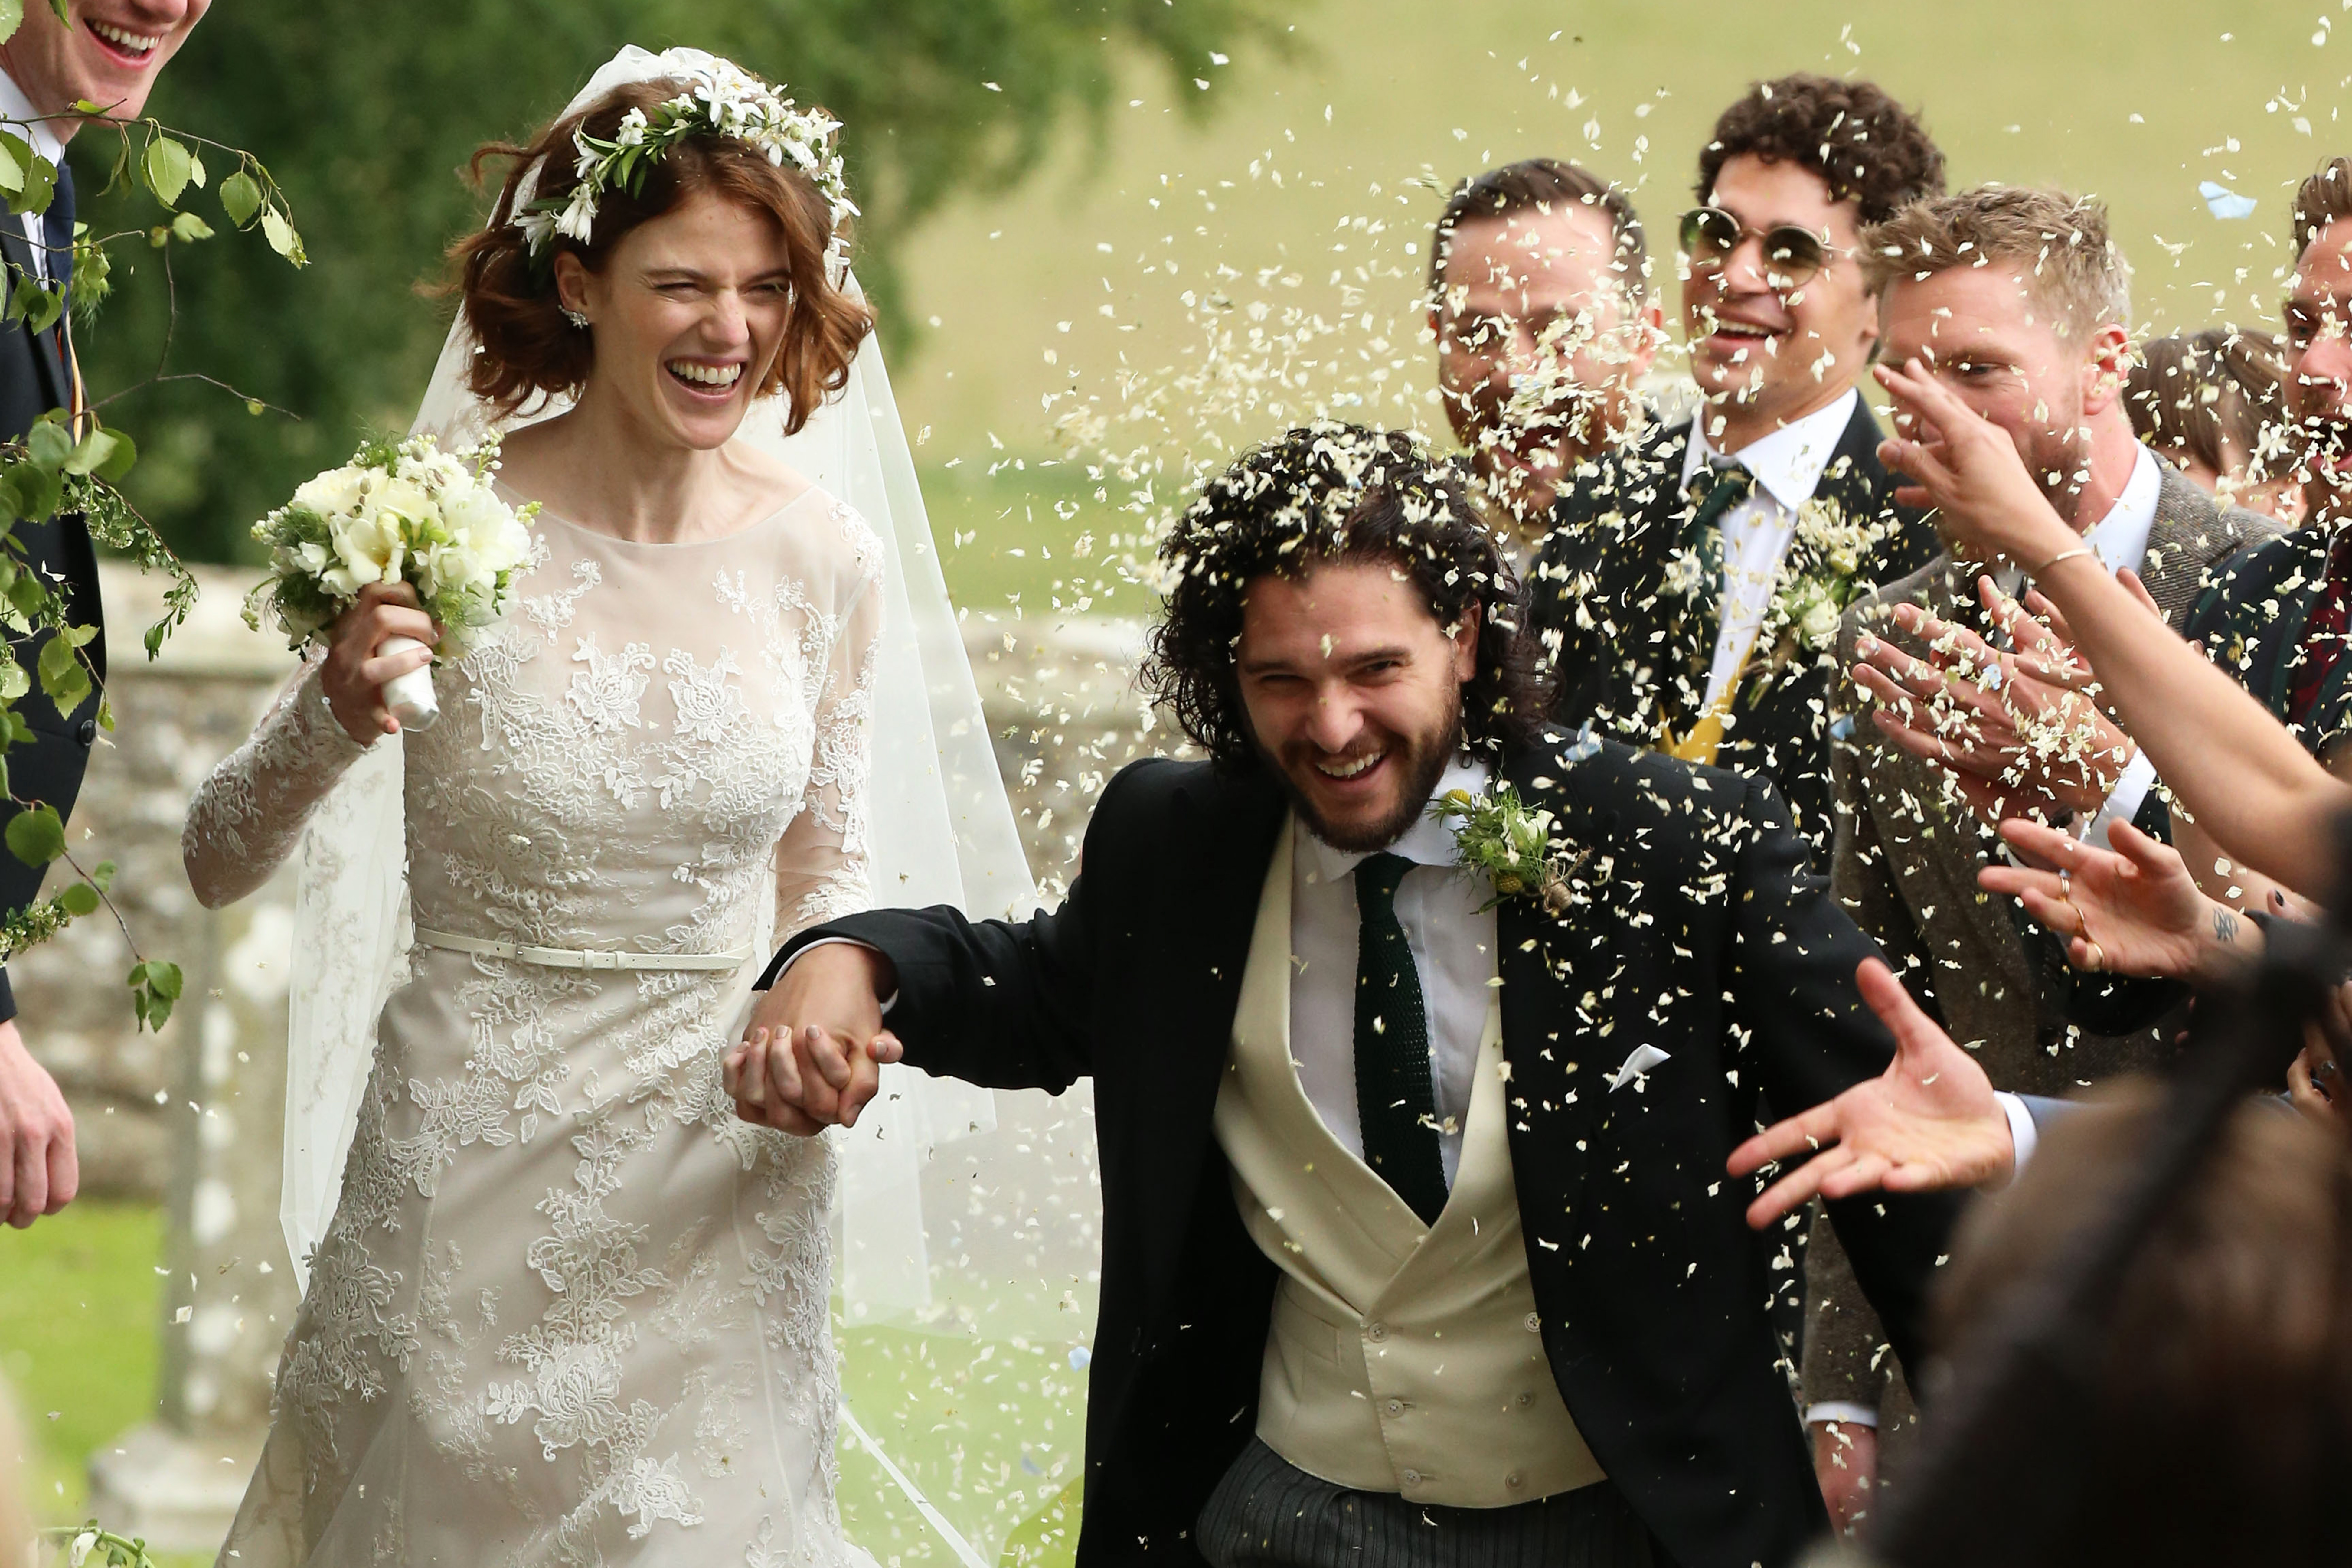 Kit Harrington and Rose Leslie's Wedding [PHOTOS]